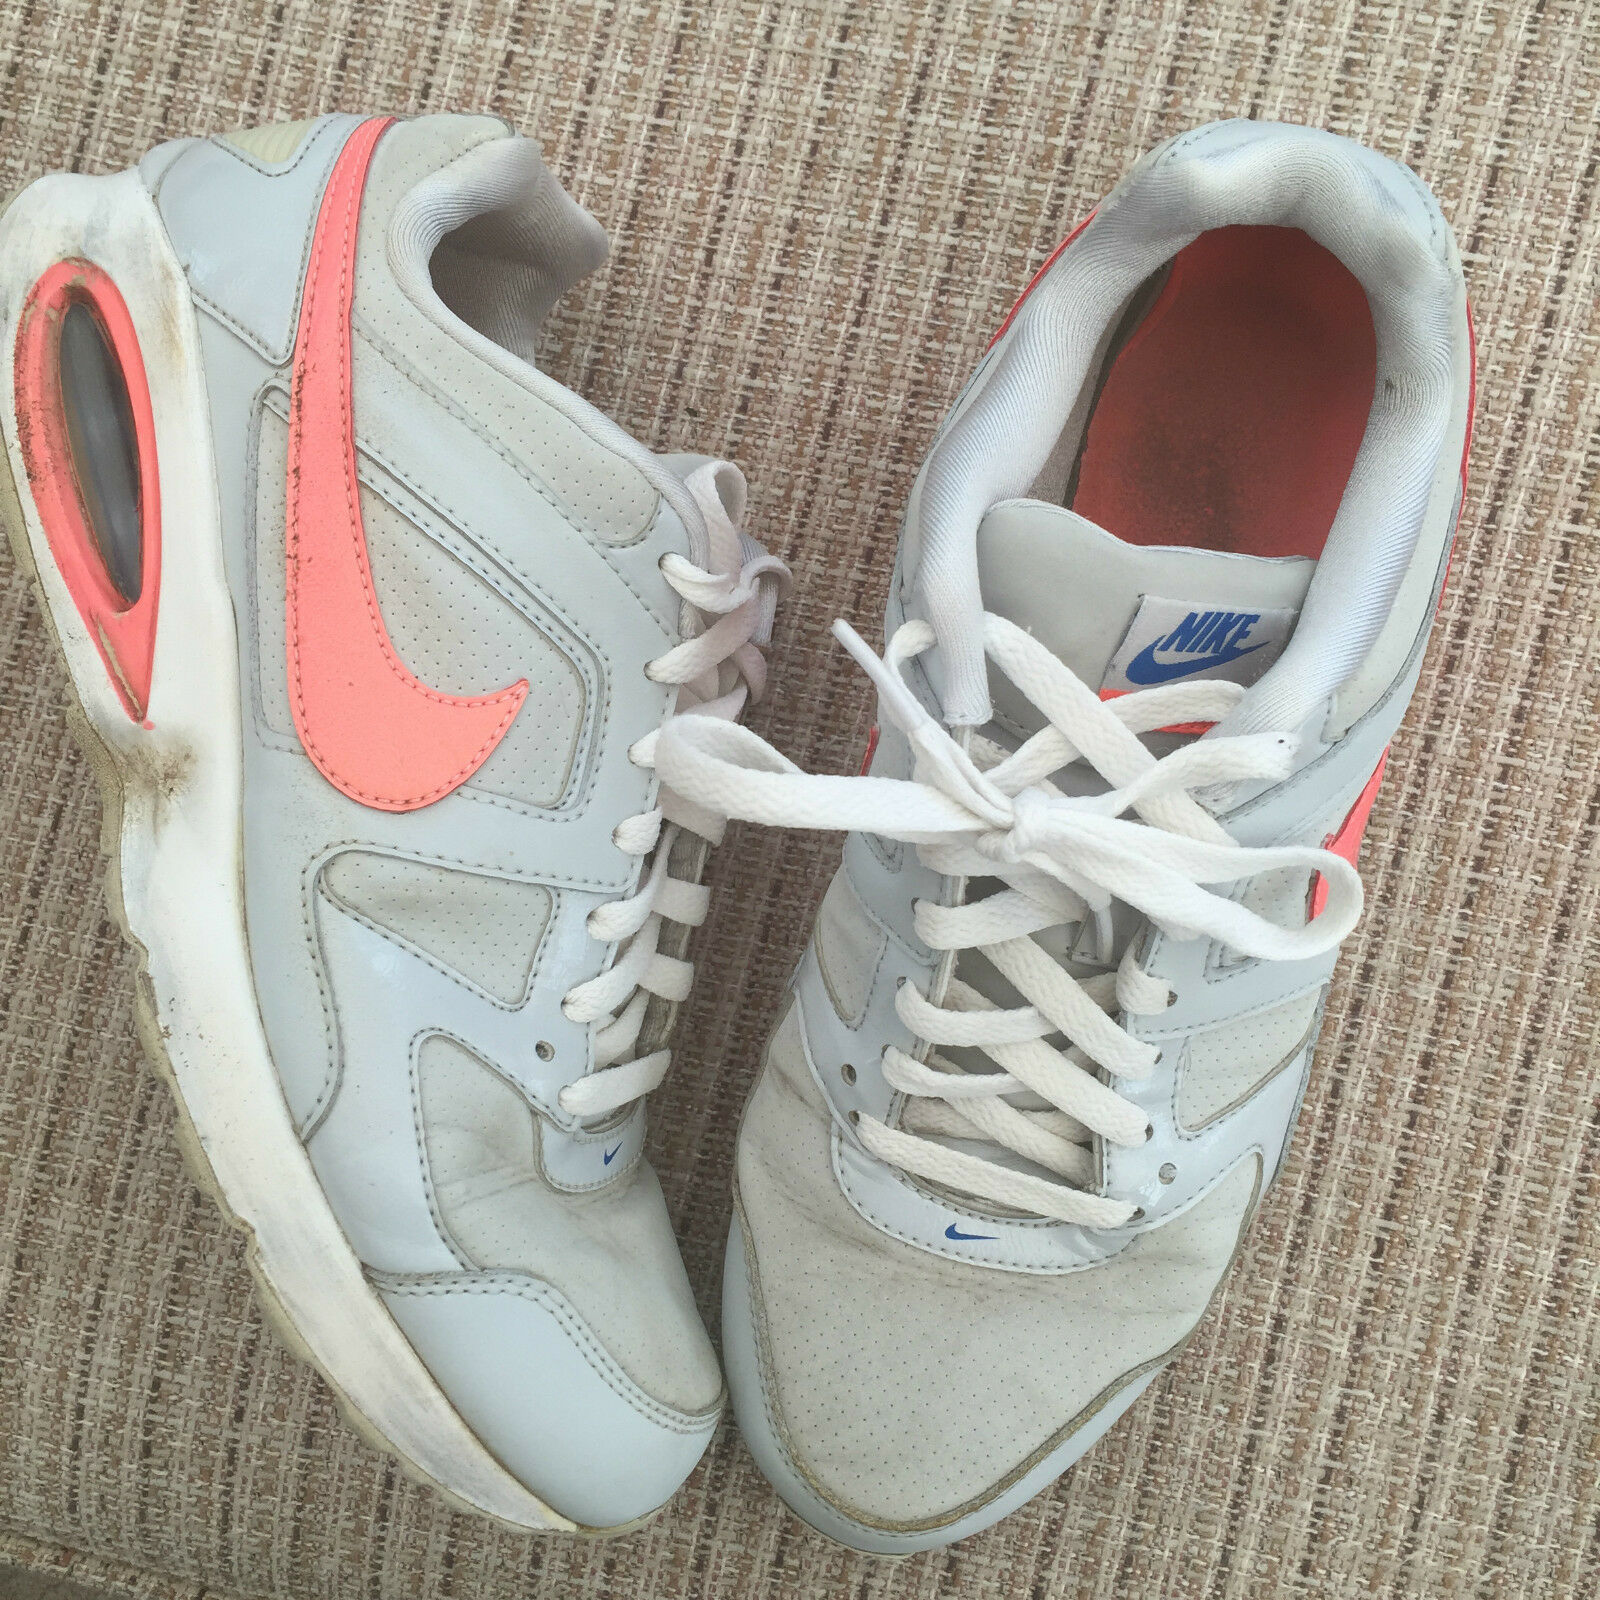 The most popular shoes for men and women NIKE AIR MAX WHITE ORANGE TRAINERS SIZE 7